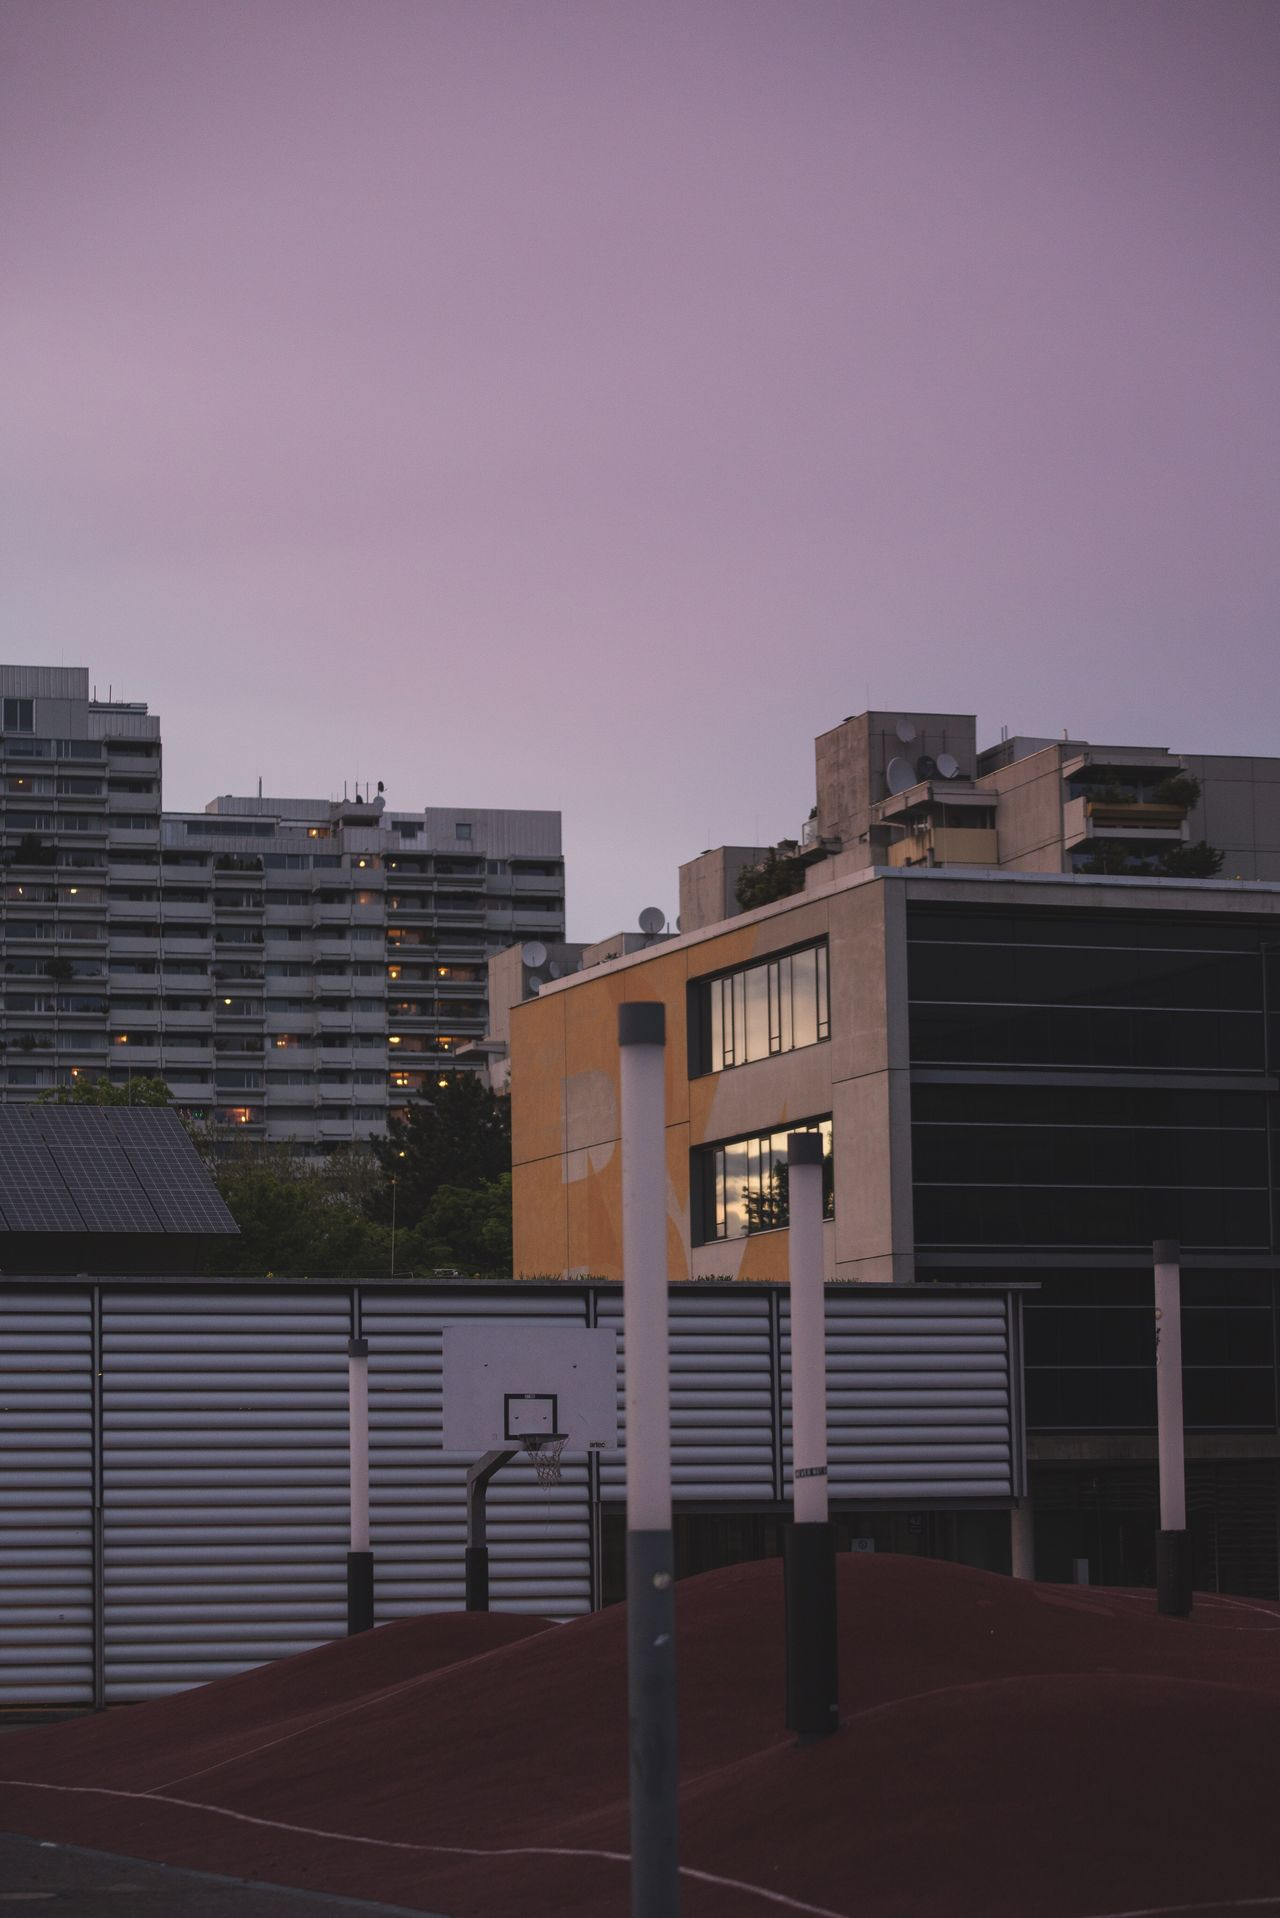 Architecture Building Exterior Built Structure City No People Modern Skyscraper Outdoors Sky Clear Sky Apartment Day Sunset Subtle Vibe Moody